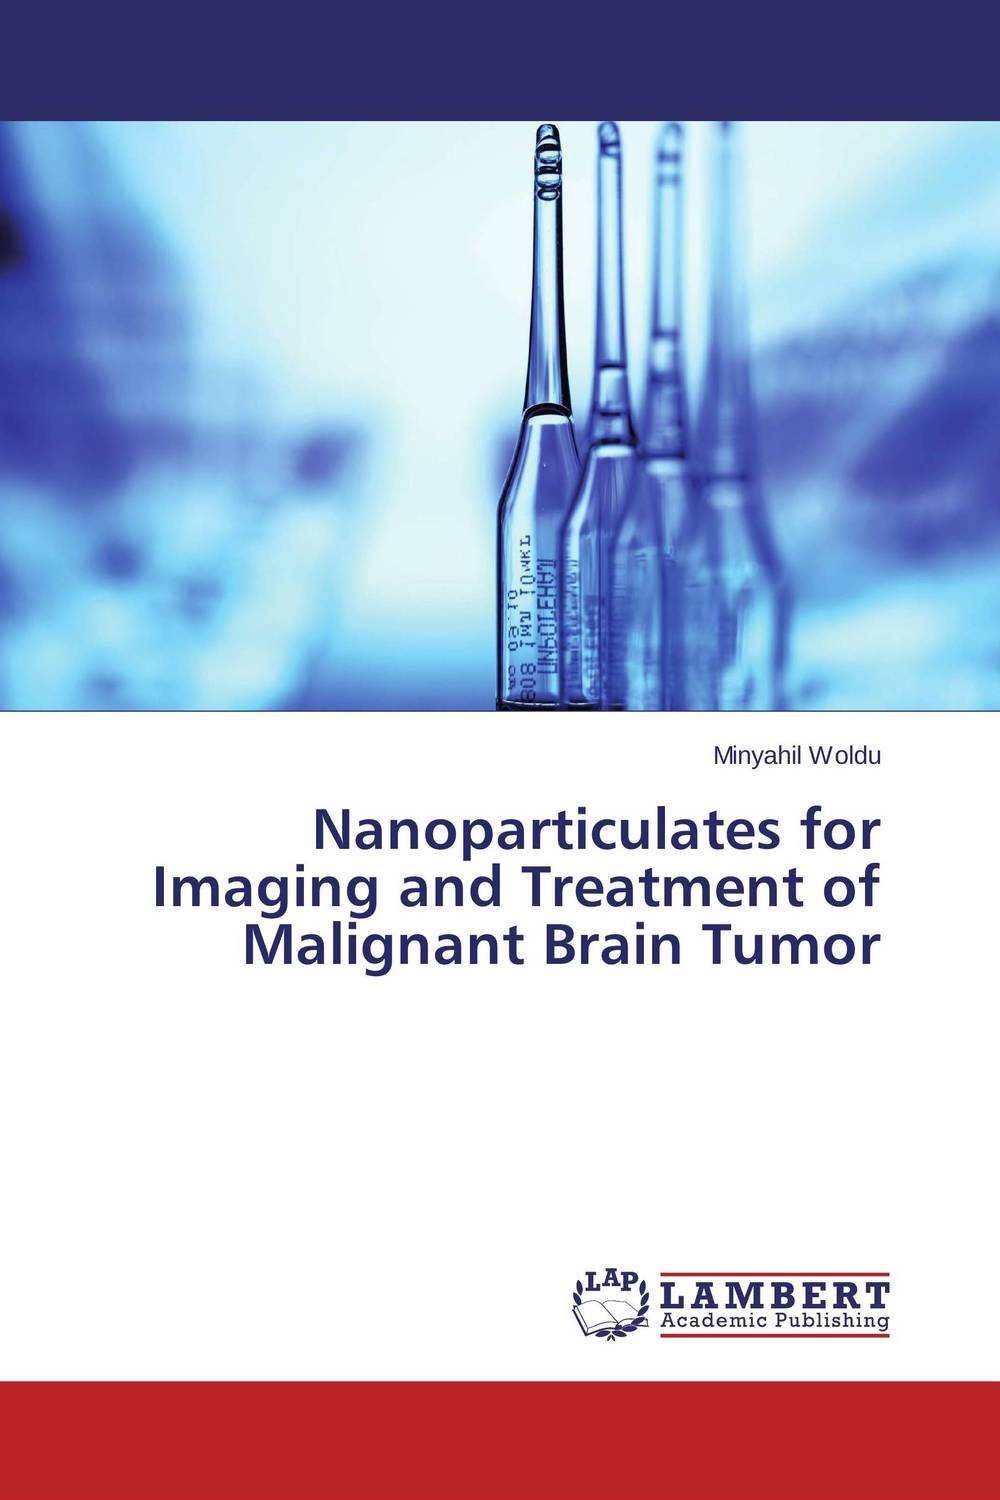 Nanoparticulates for Imaging and Treatment of Malignant Brain Tumor amburanjan santra rakesh kumar and c s bal evaluation of brain tumor recurrence role of pet spect mr